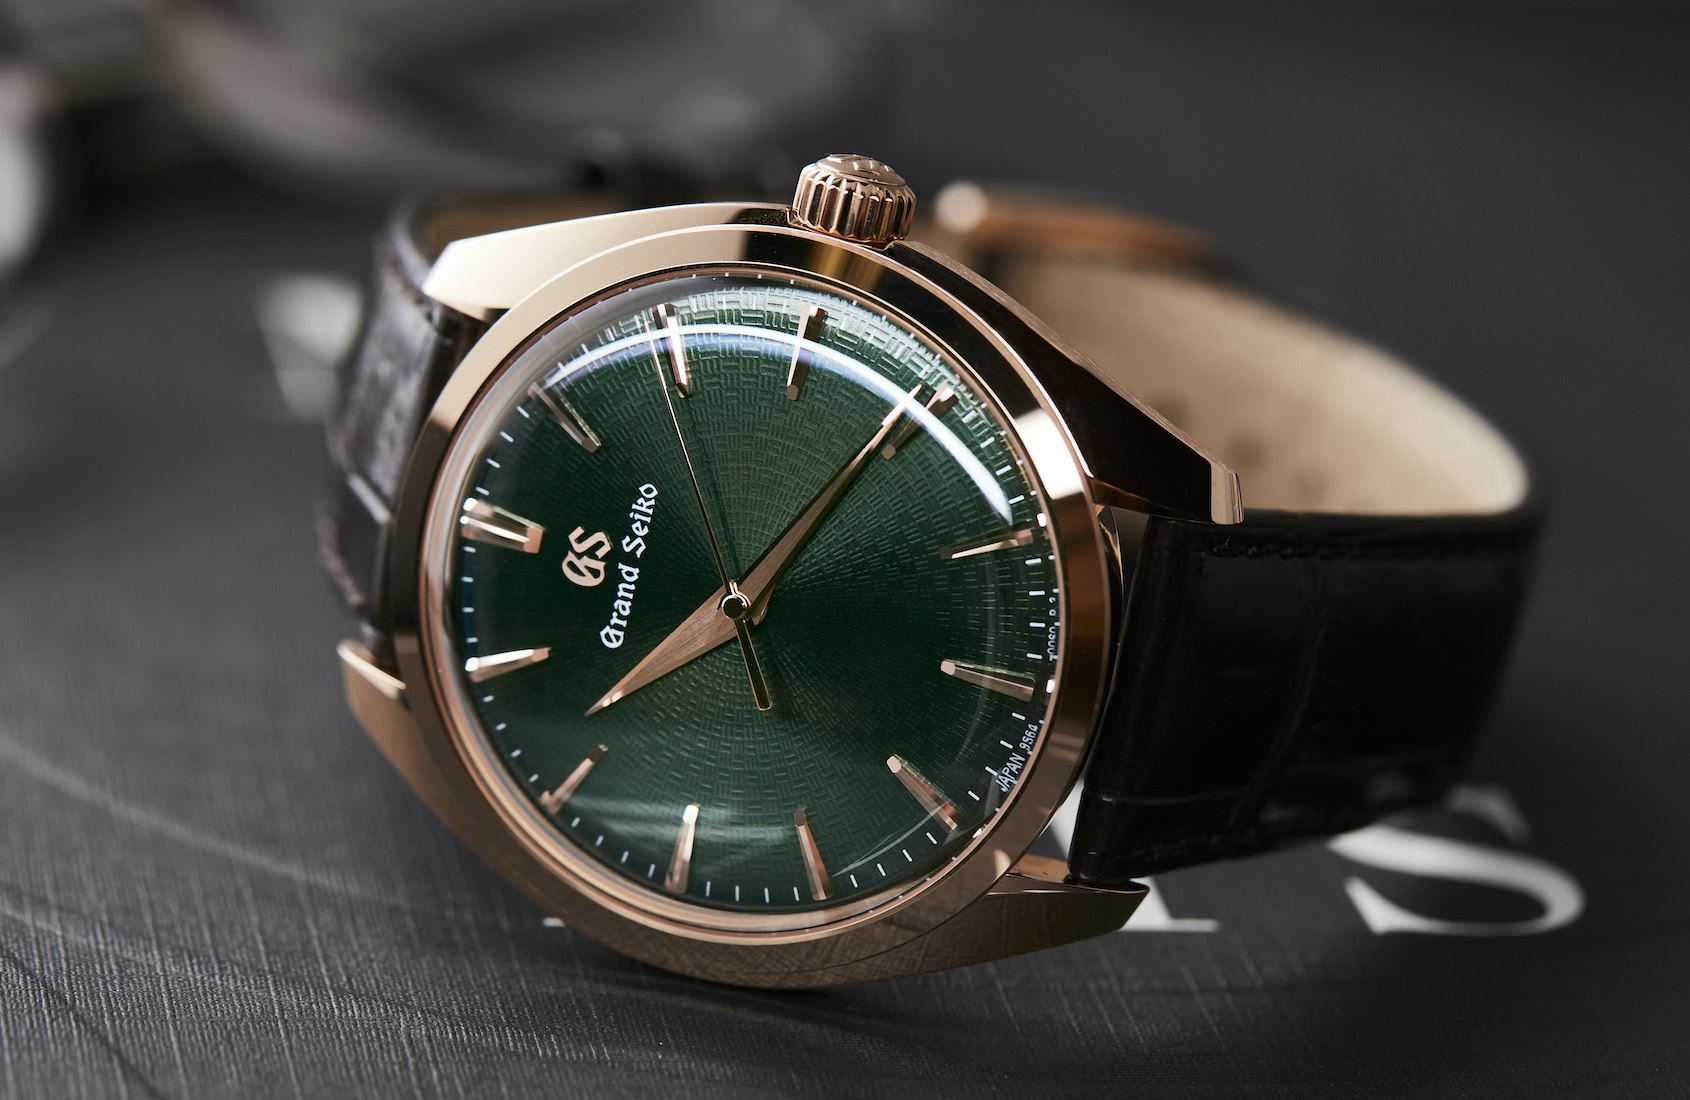 HANDS-ON: The Grand Seiko SBGW264 has one of the best green dials in the industry